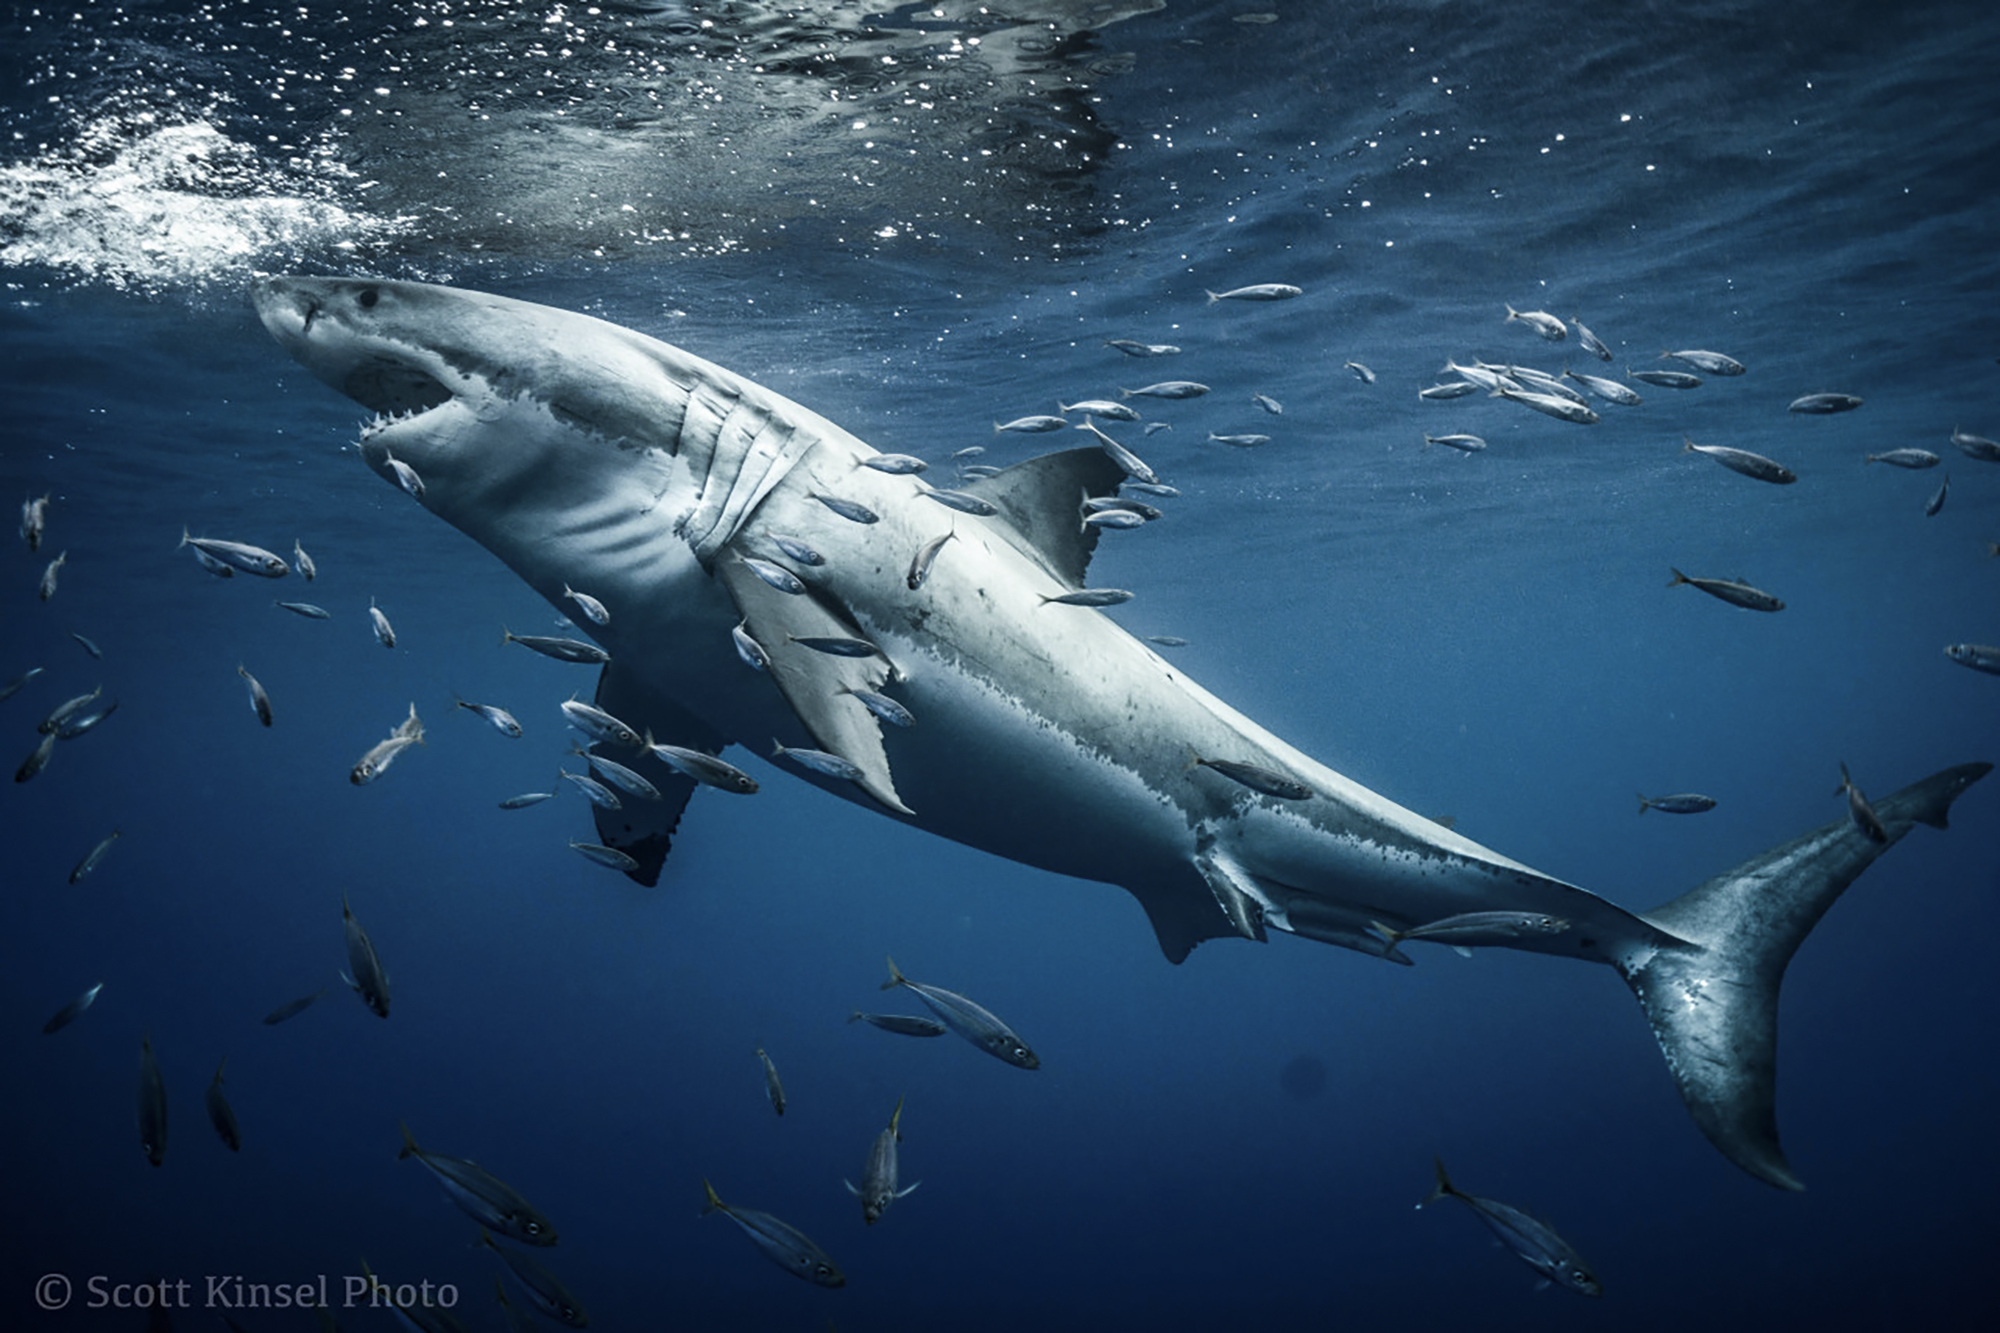 The beauty of a great white. Photo by Scott Kinsel